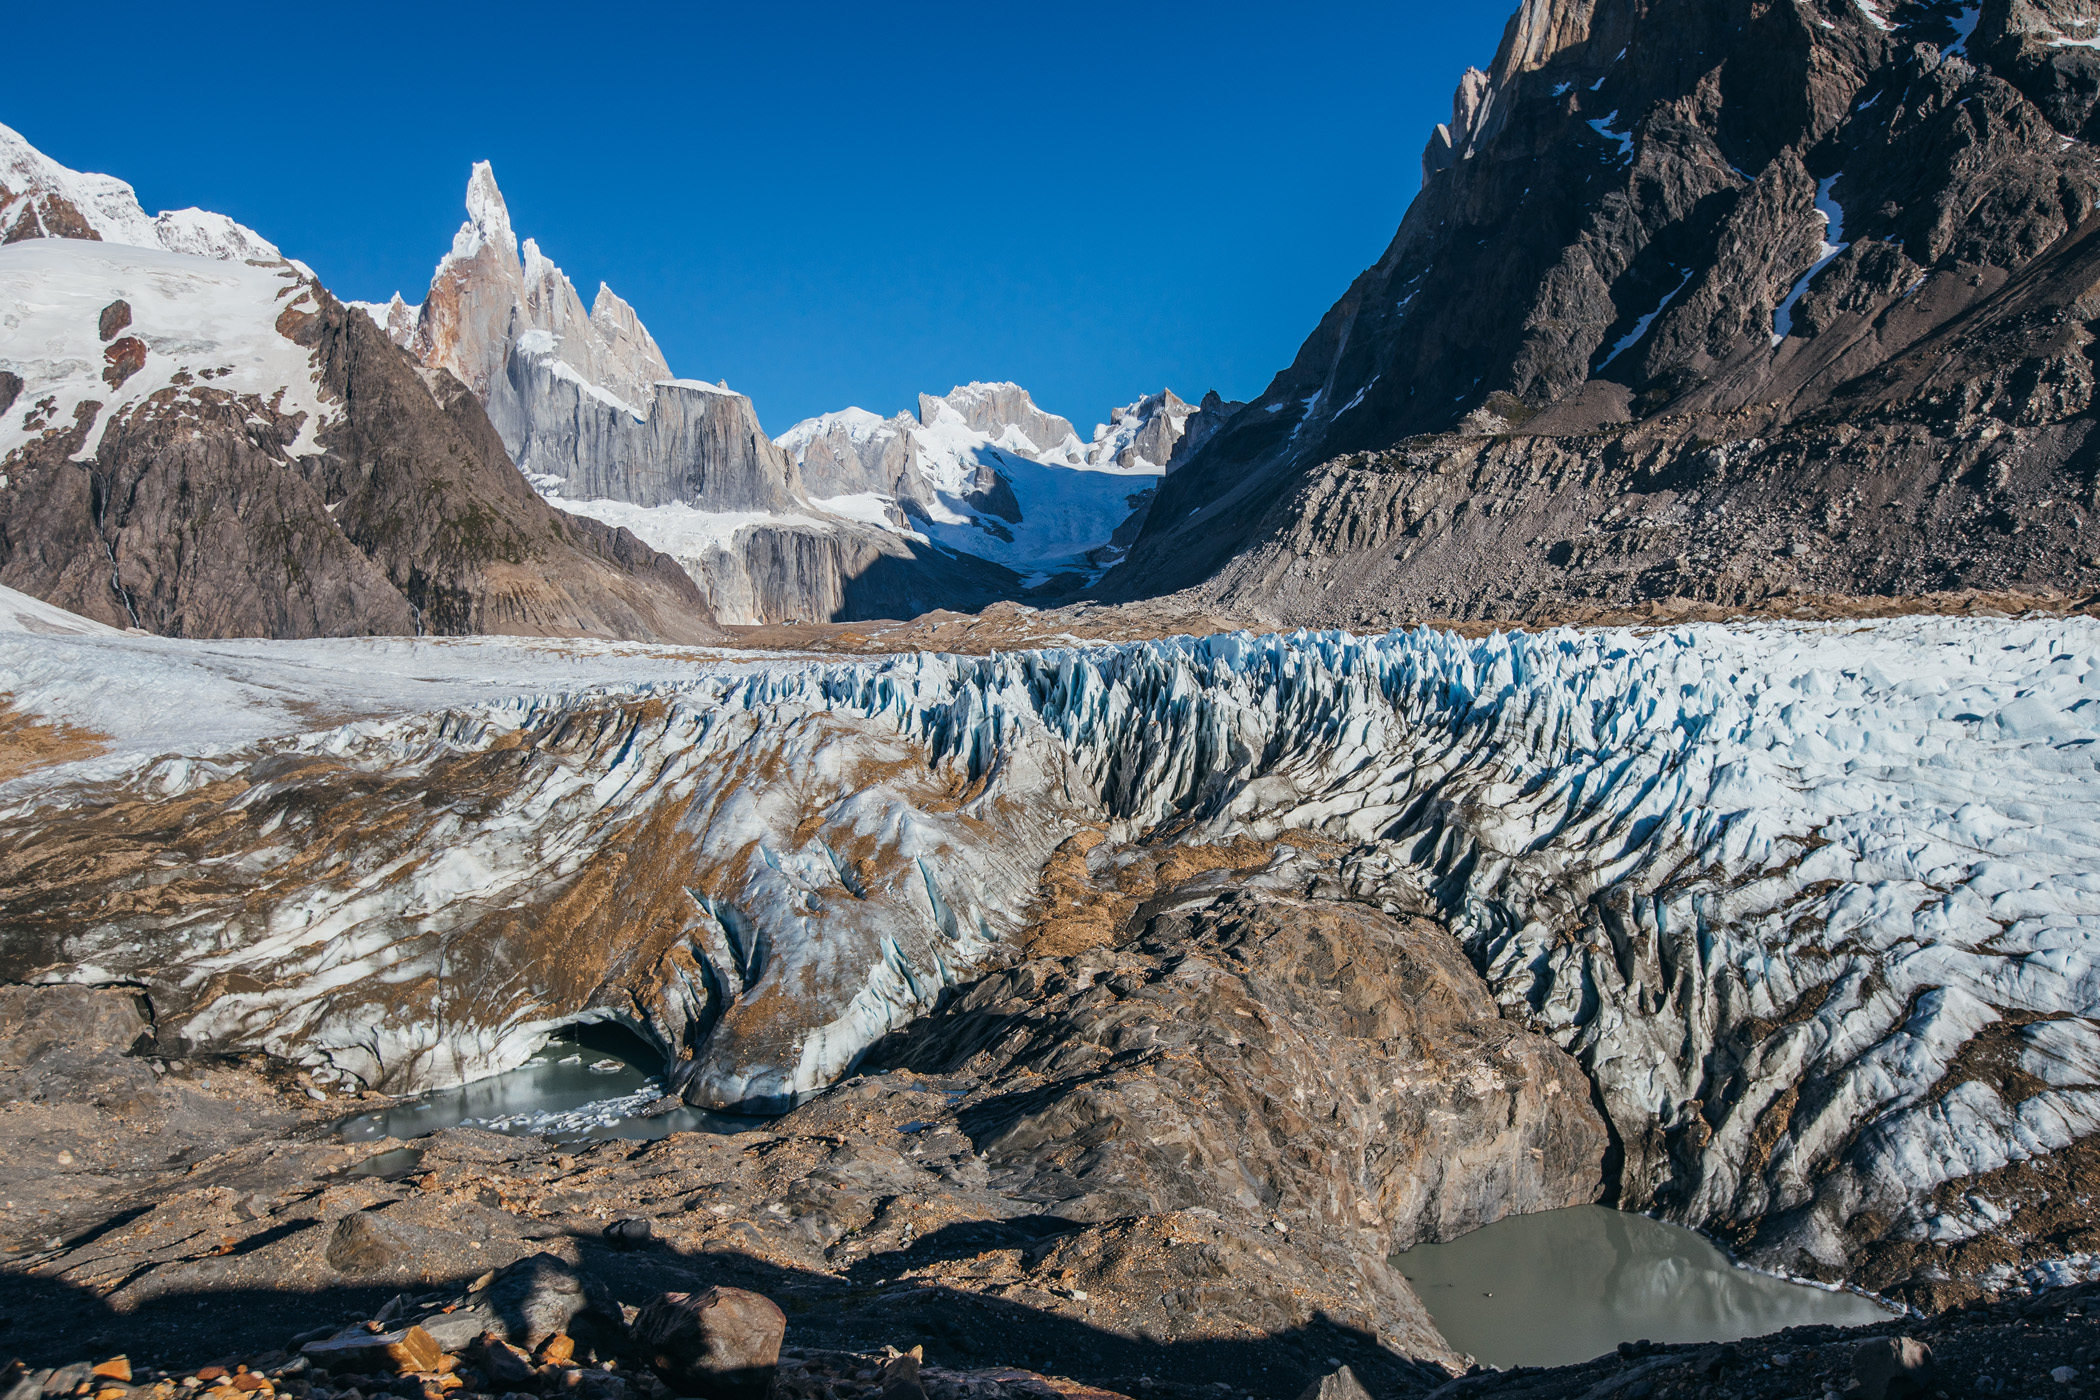 KylieFly_ArgentinaExpedition-392.jpg